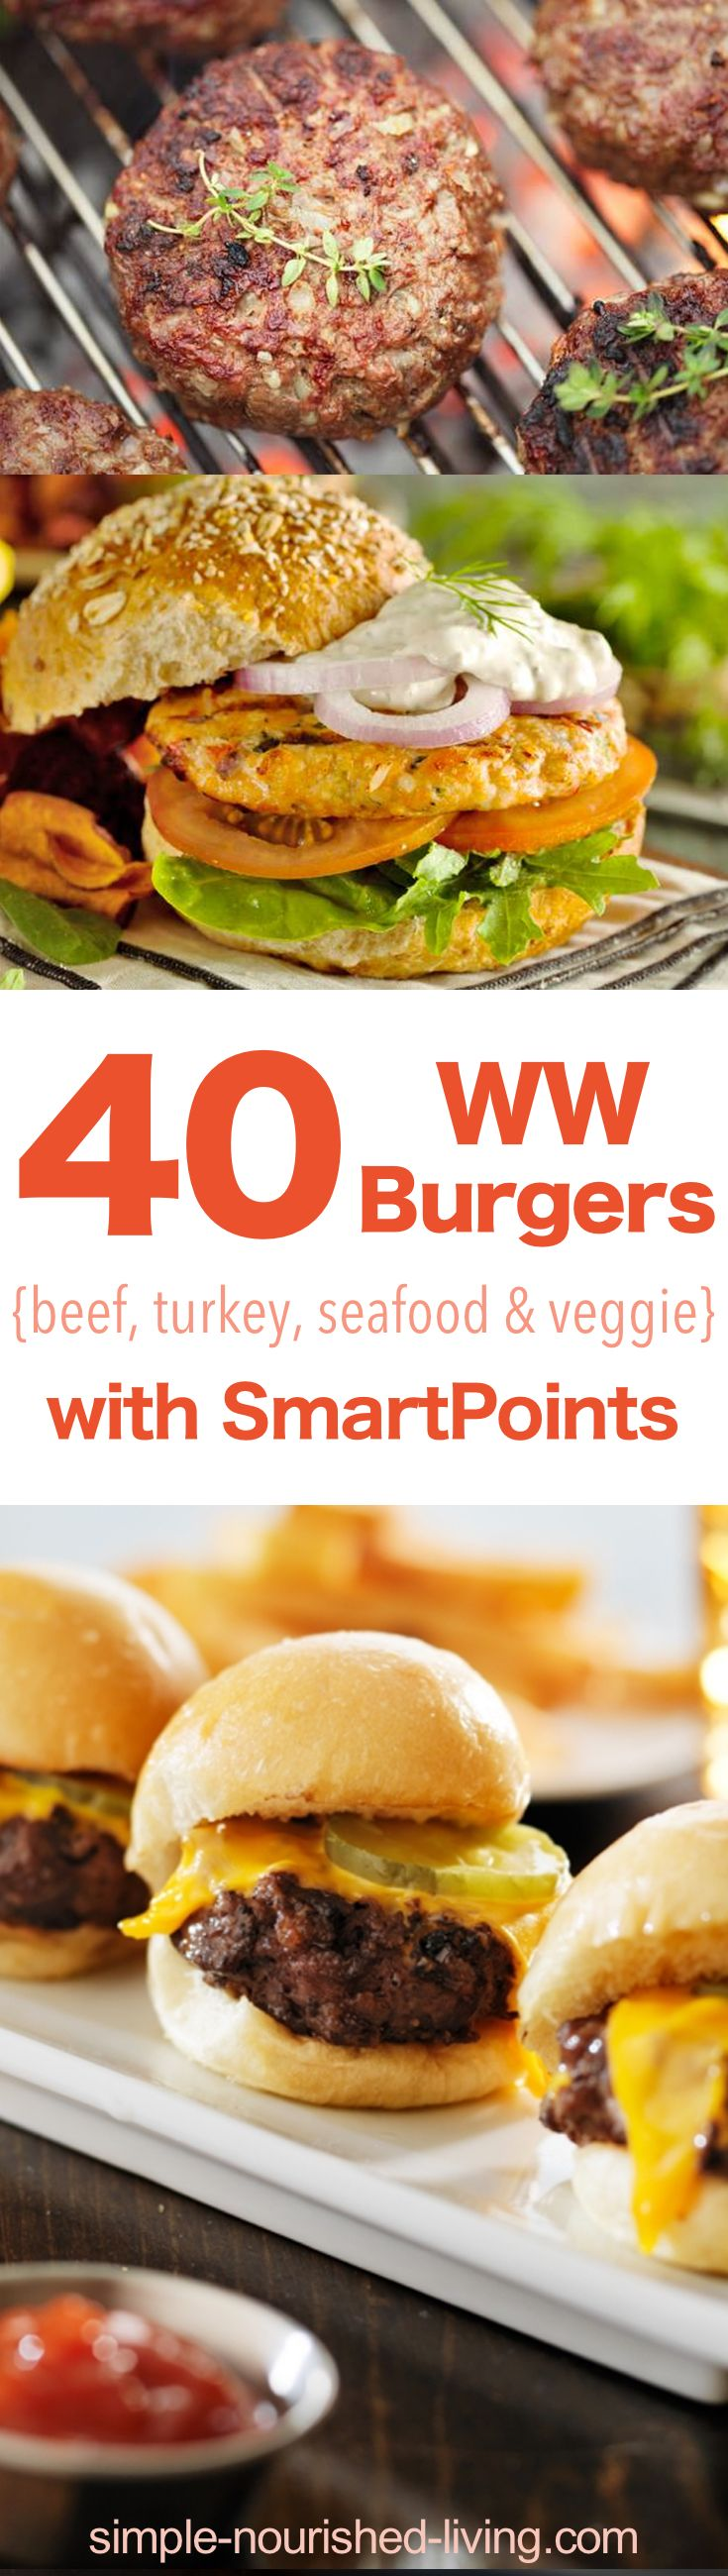 A collection of 40 healthy, flavorful Weight Watchers Burger Recipes, both meat and meatless, to tempt your tastebuds - all with SmartPoints!